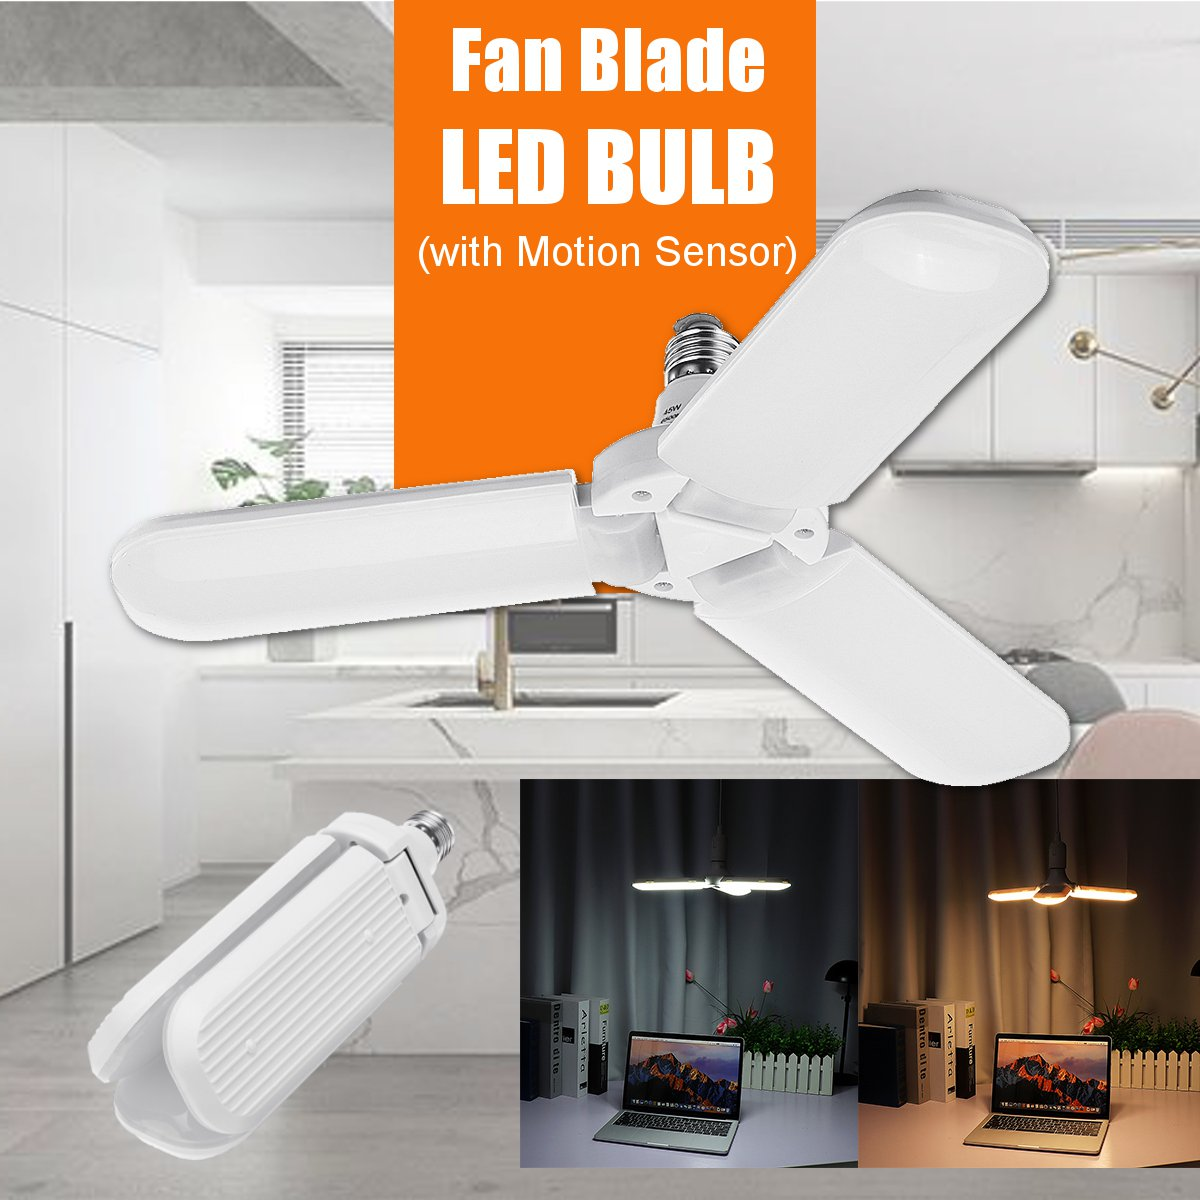 LED Garage Lights E27 Folding Motion Sensor LED Bulb Pendant Lamp Workshop Adjustable Fan Blades Deformable Ceiling Lighting